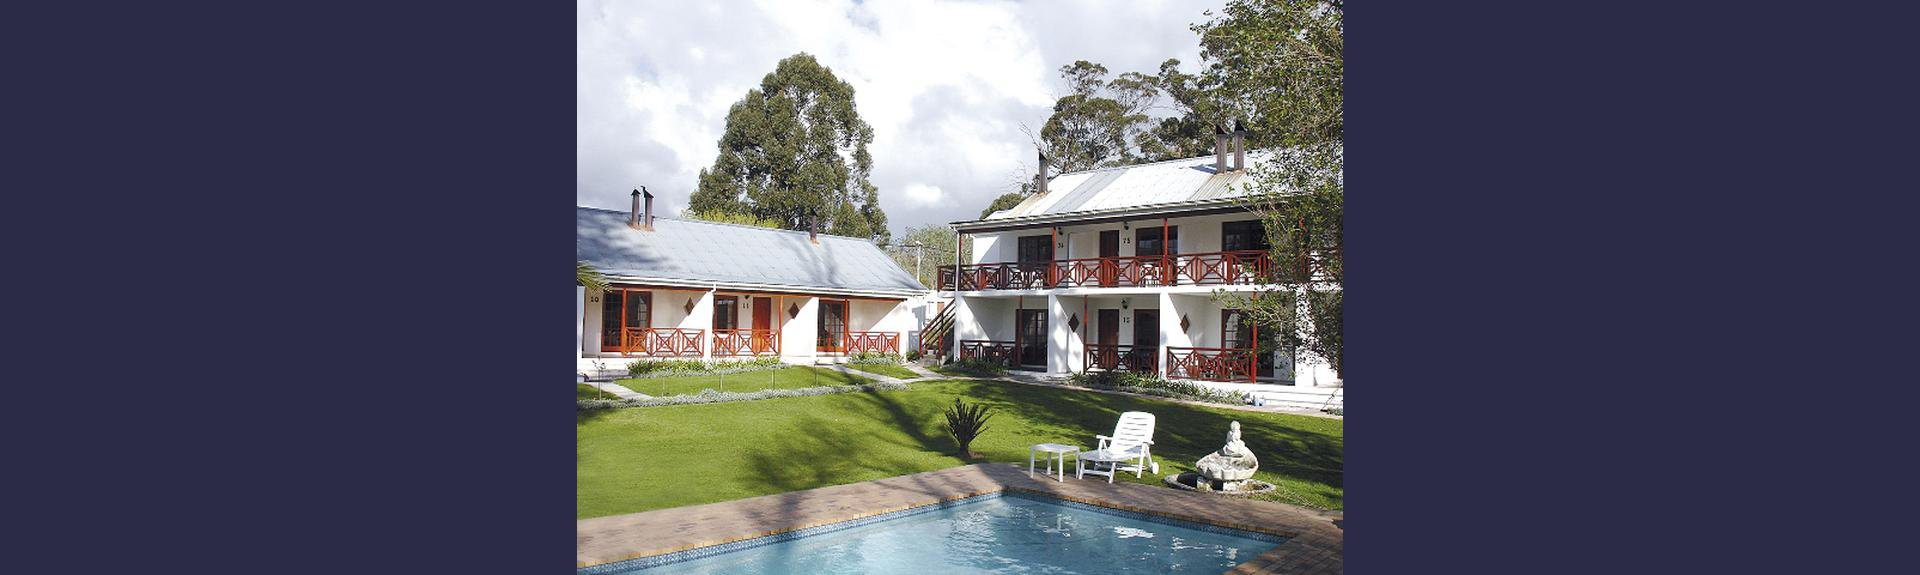 Houw Hoek Hotel | Grabouw | Accomodation